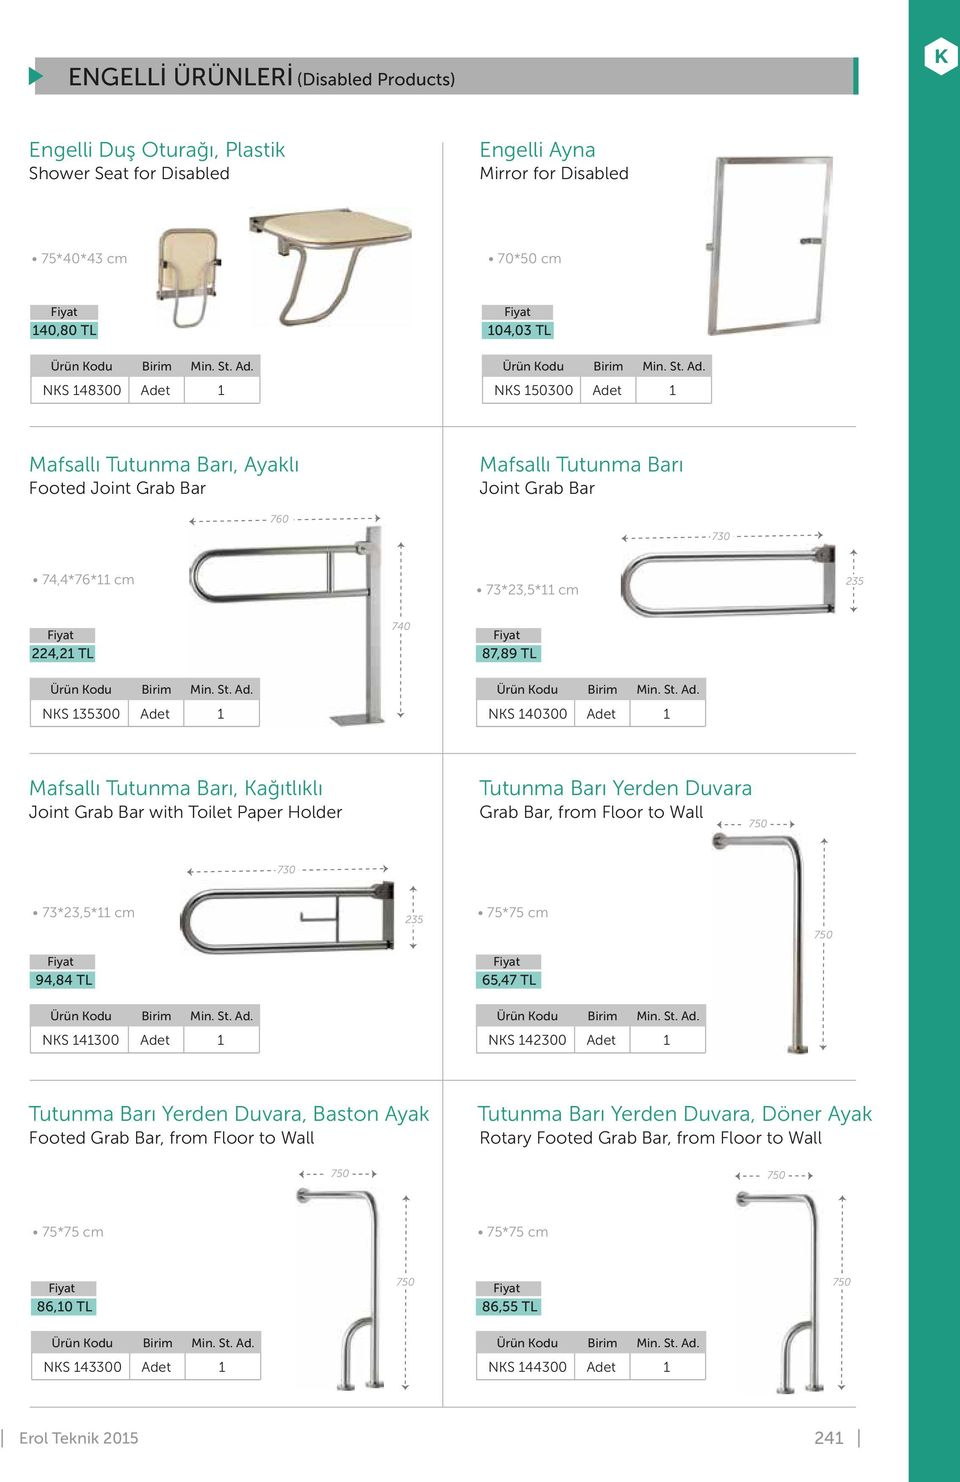 Grab Bar with Toilet Paper Holder Tutunma Barı Yerden Duvara Grab Bar, from Floor to Wall 750 730 73*23,5* cm 235 75*75 cm 750 94,84 TL 65,47 TL NKS 4300 NKS 42300 Tutunma Barı Yerden Duvara, Baston